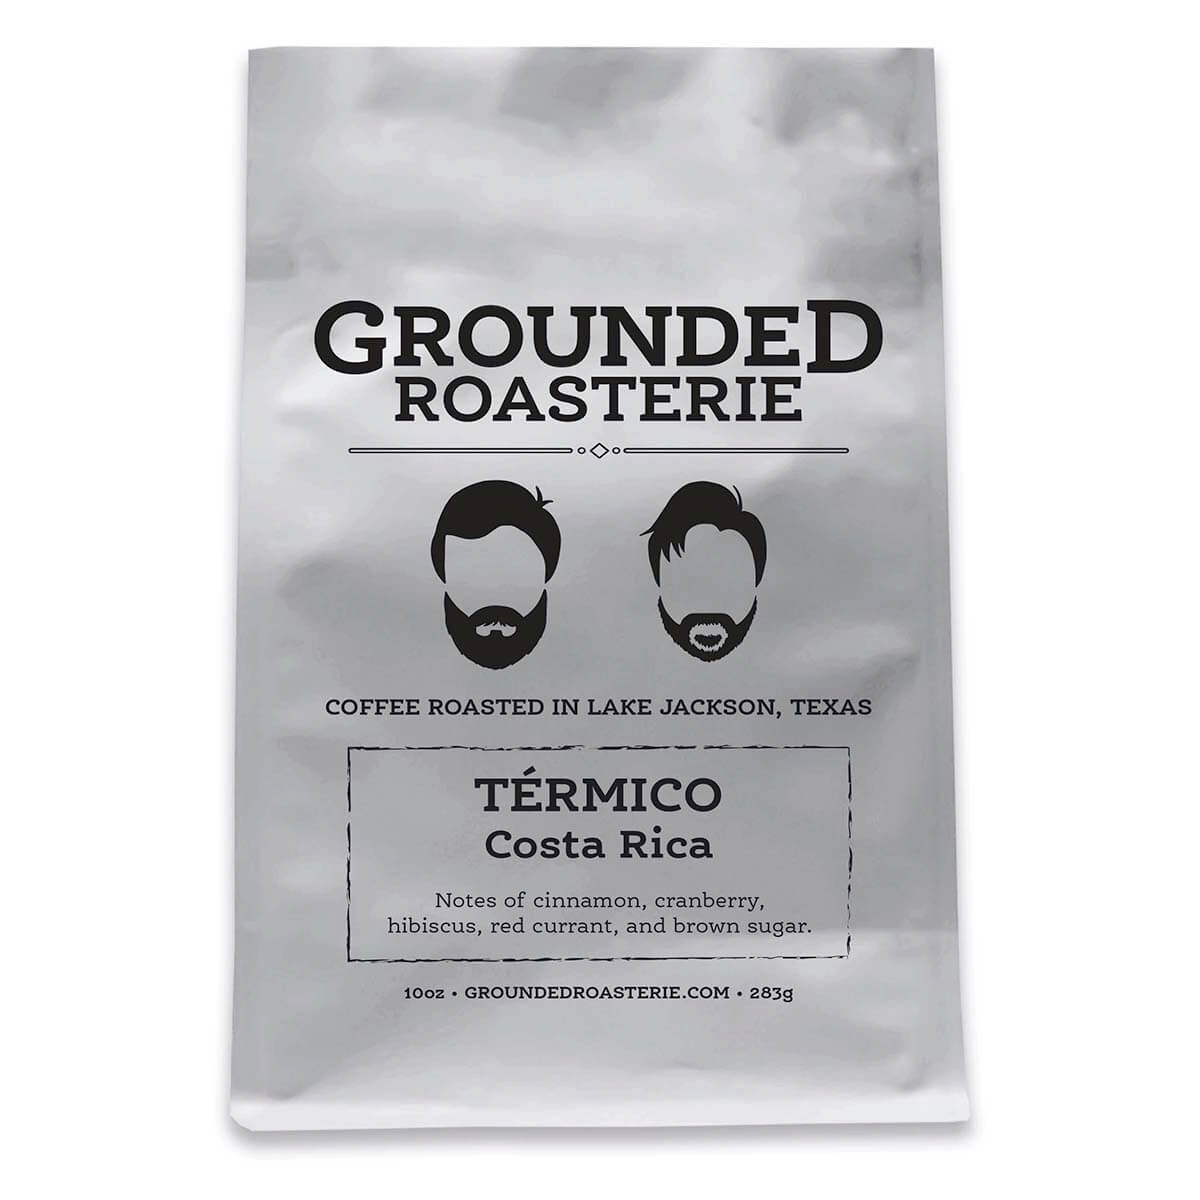 Costa Rica Térmico from Grounded Roasterie